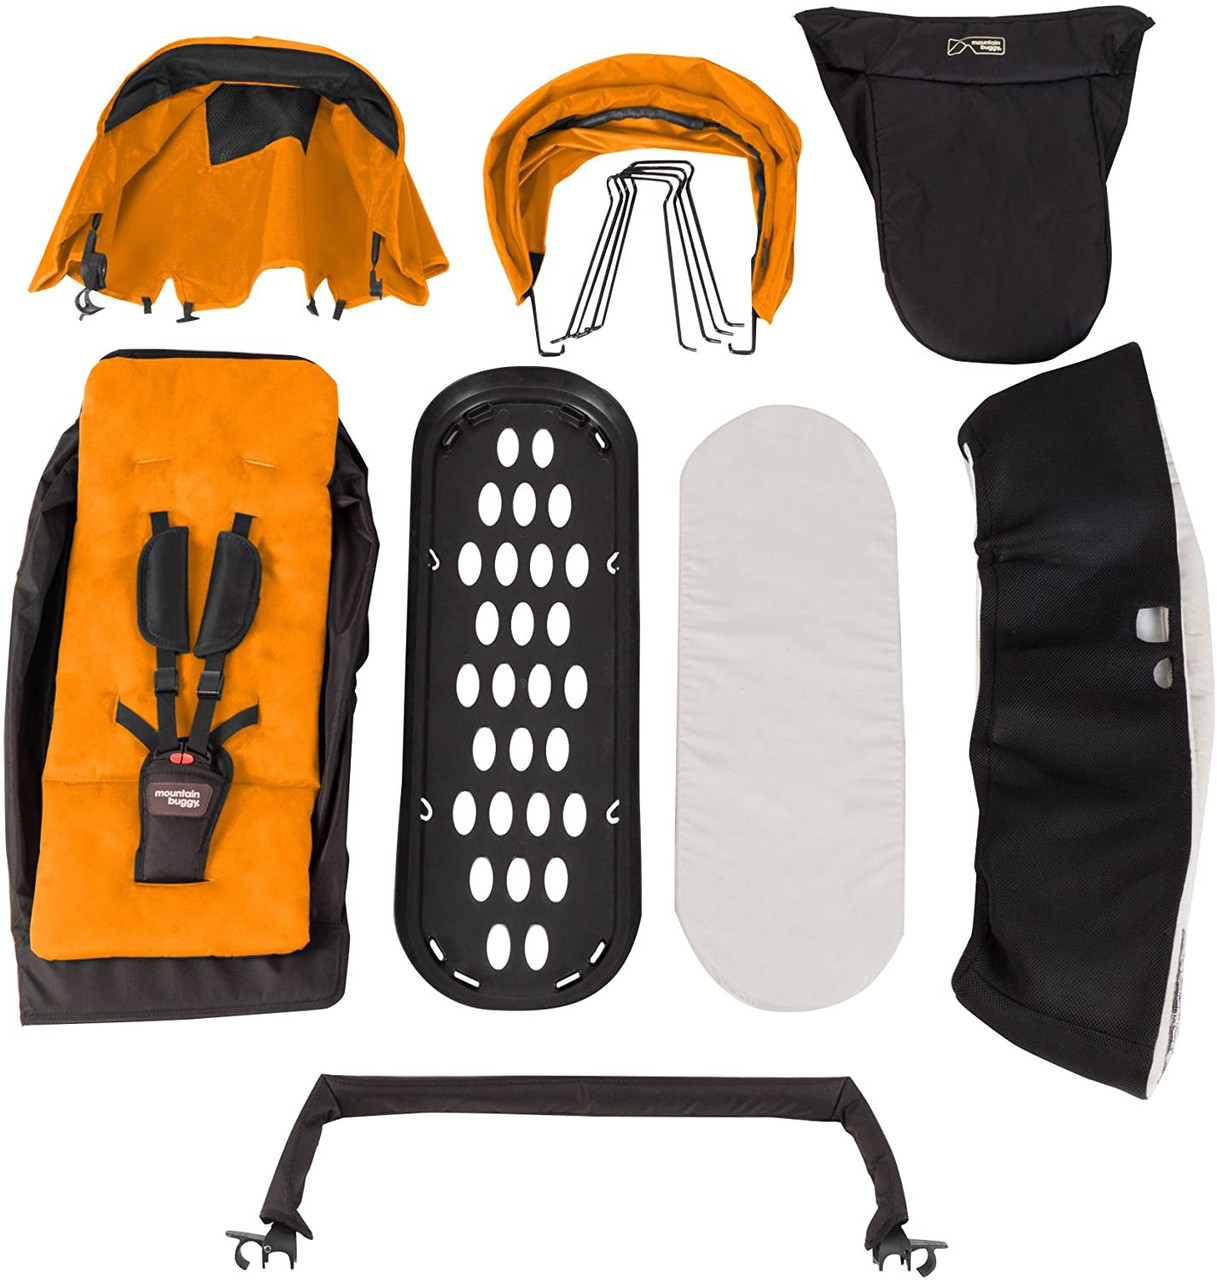 Phi&Teds Family Pack for 2014-2016 Duet as a Single- Orange Transform your Duet pram to grow with your family with the eye-catching addition of the family pack accessory!